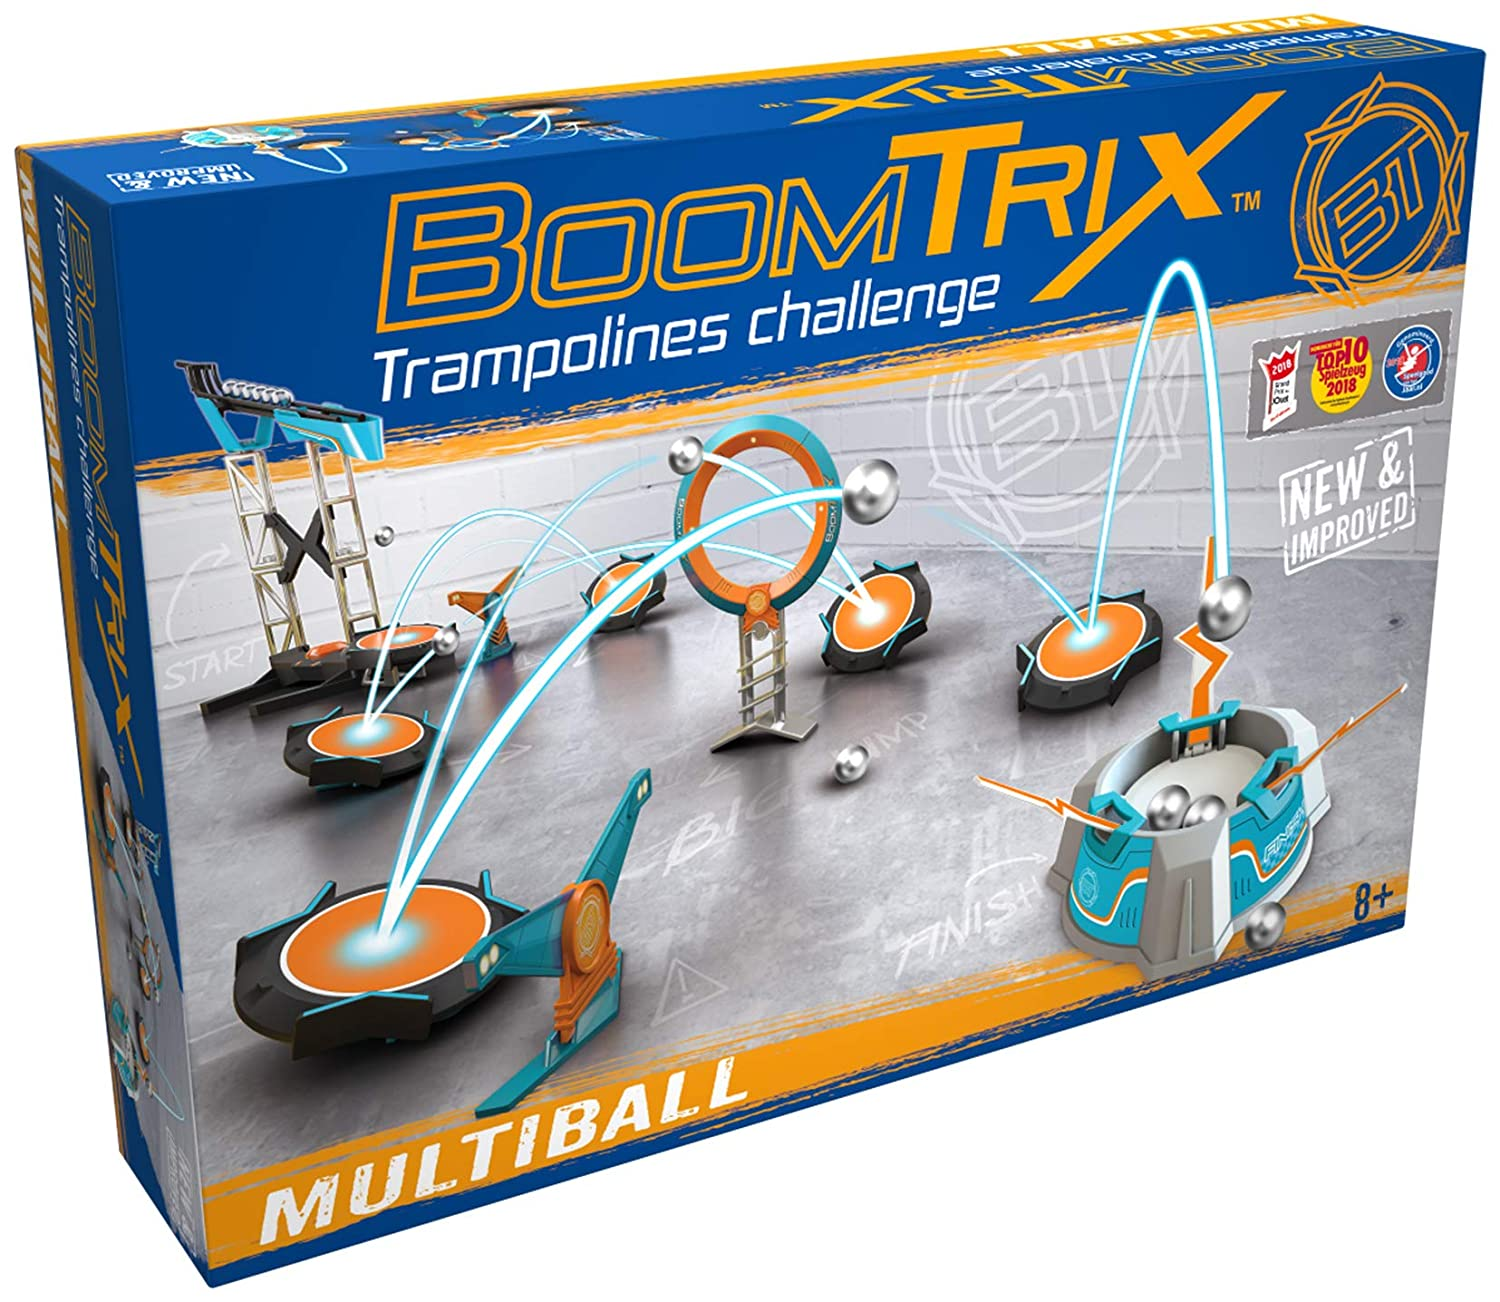 Goliath -Boomtrix , Pack Multi-trucos (80604)